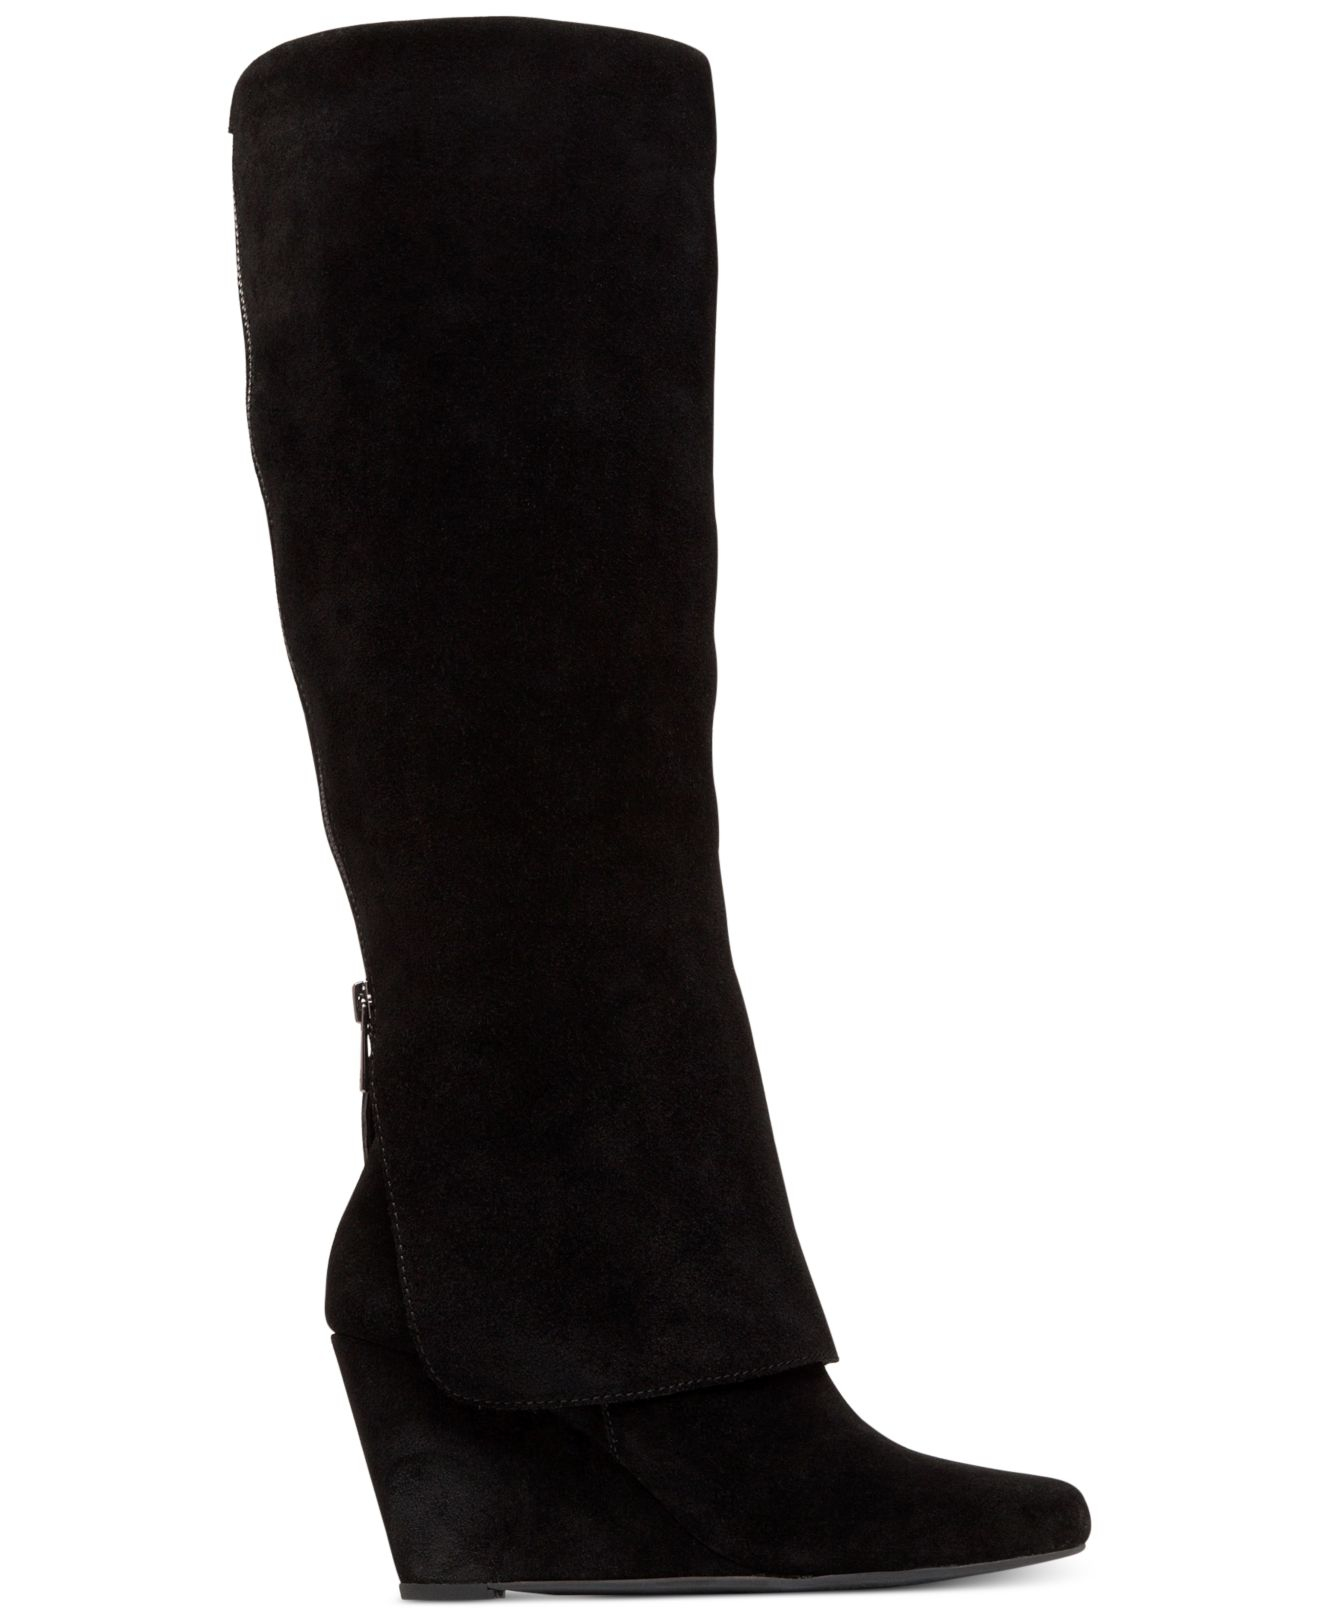 rallie cuffed wedge boots in black black